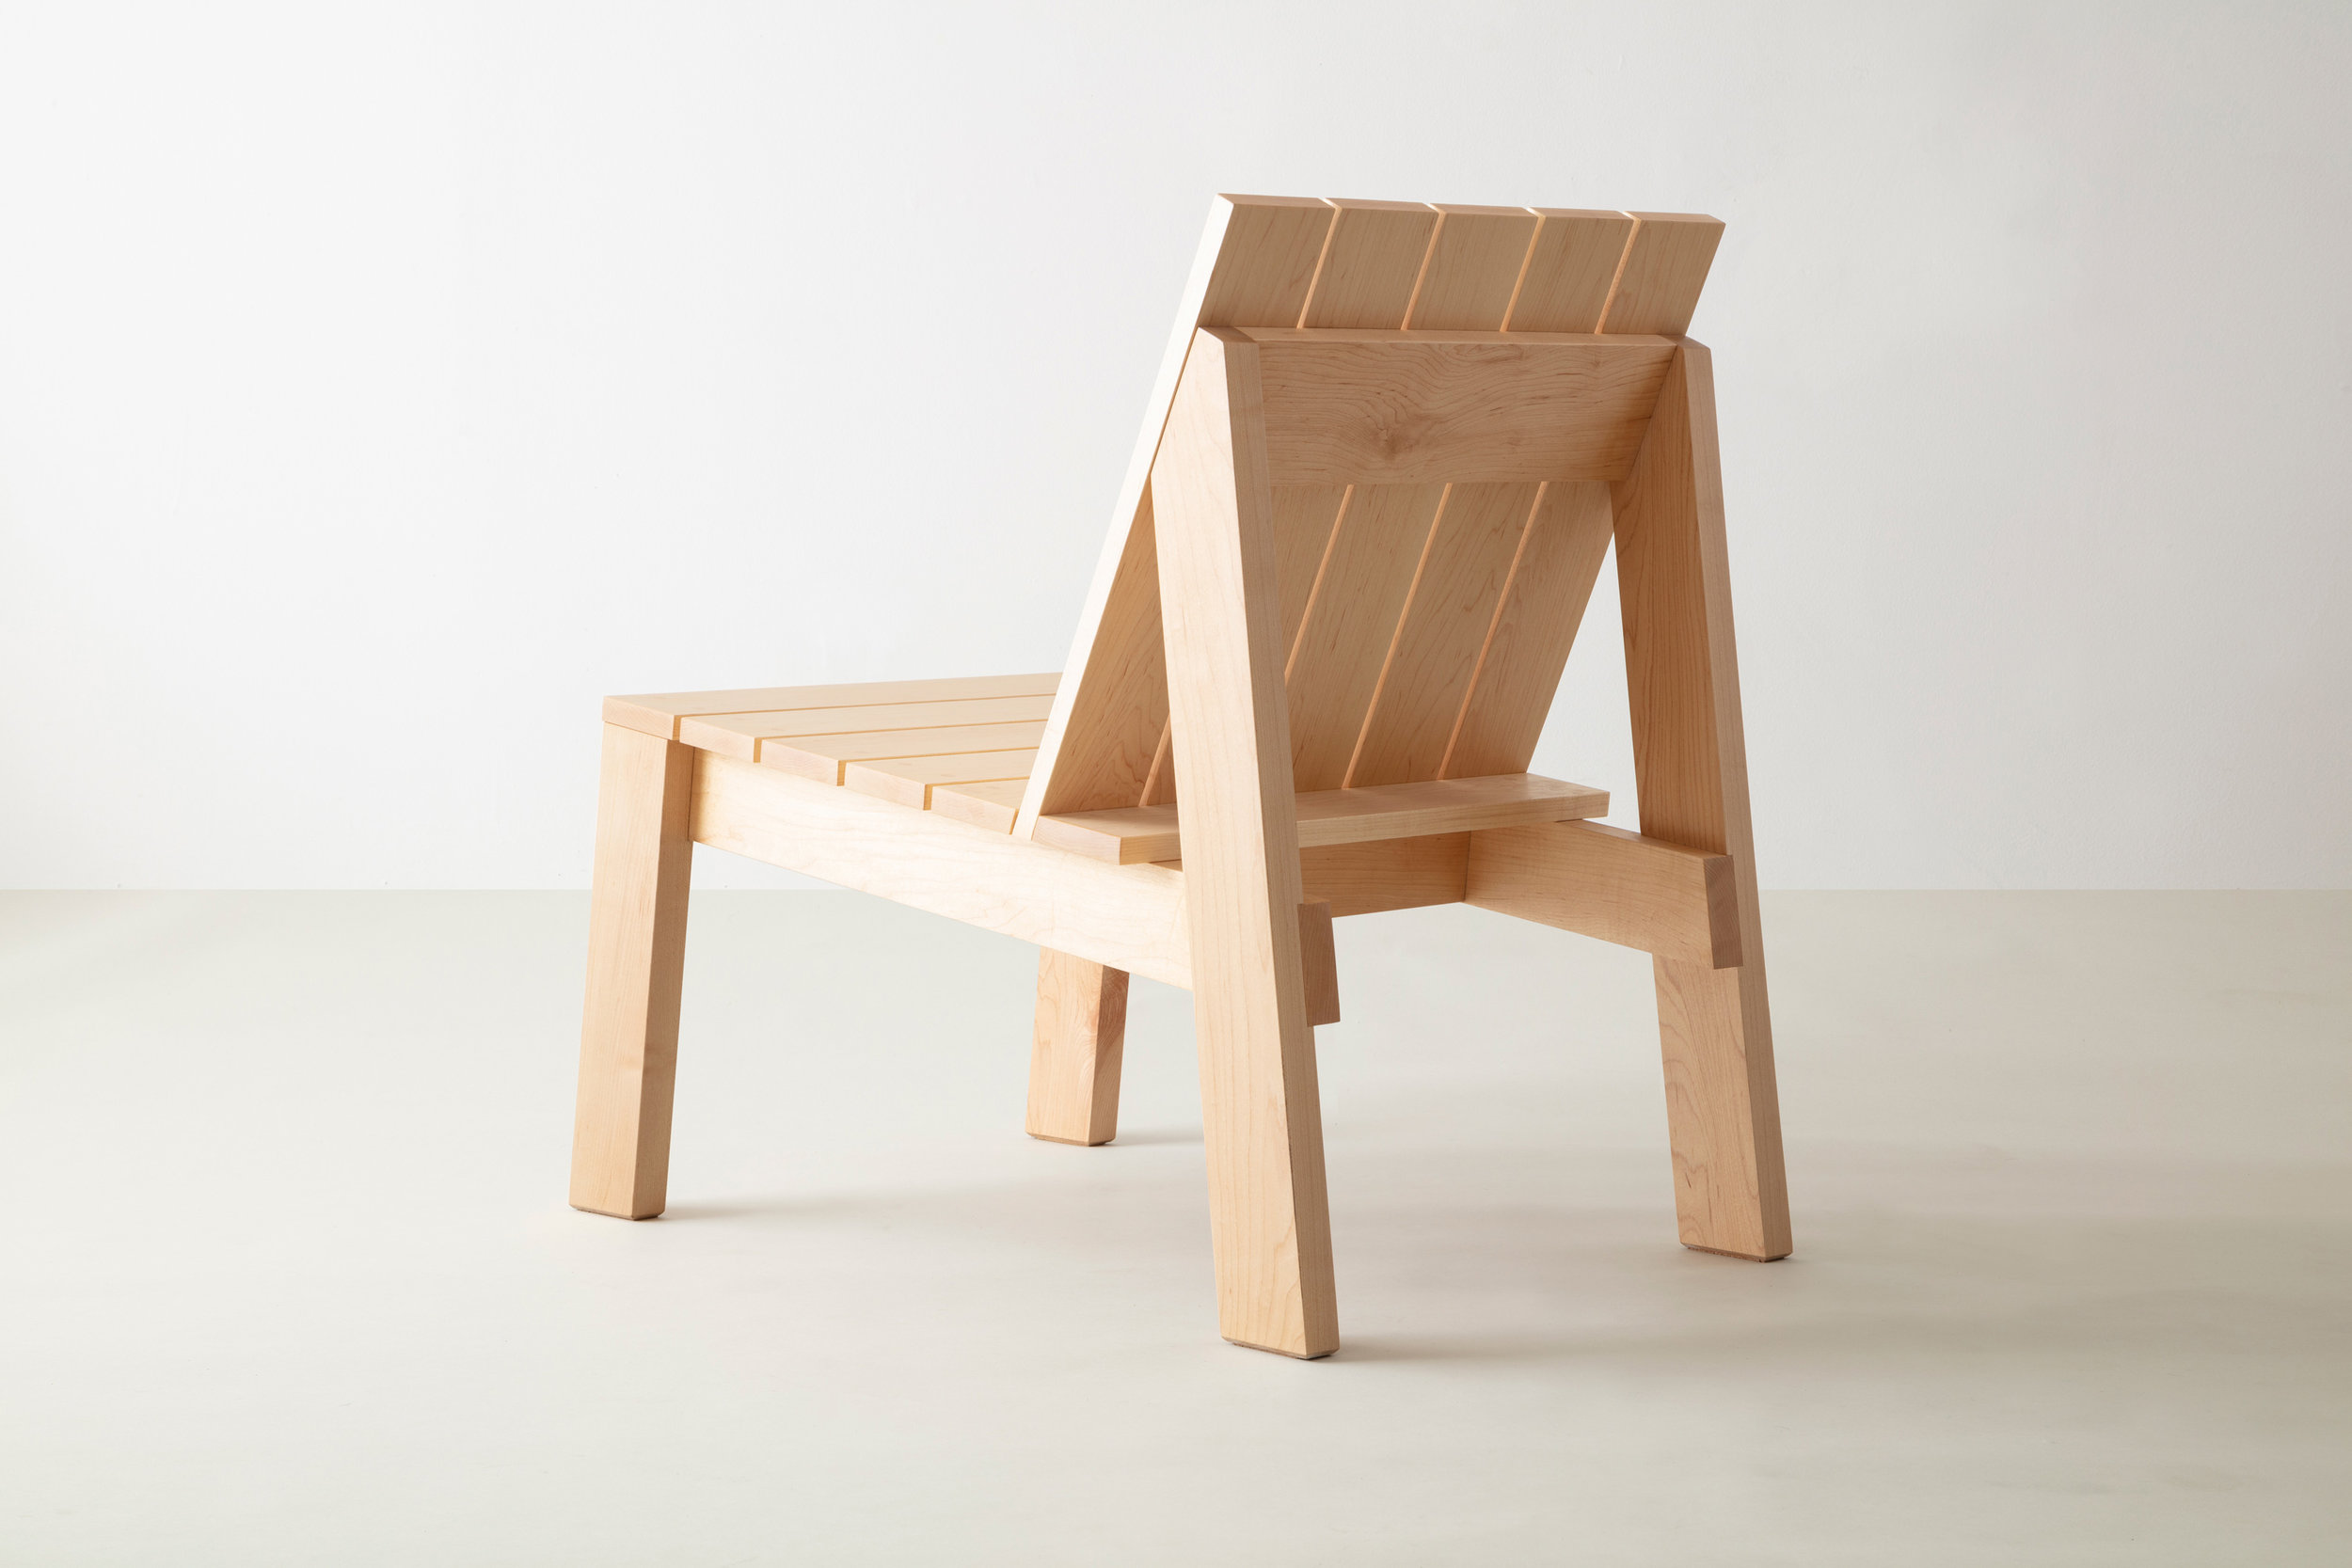 Little Wood Chair by David Gaynor Design